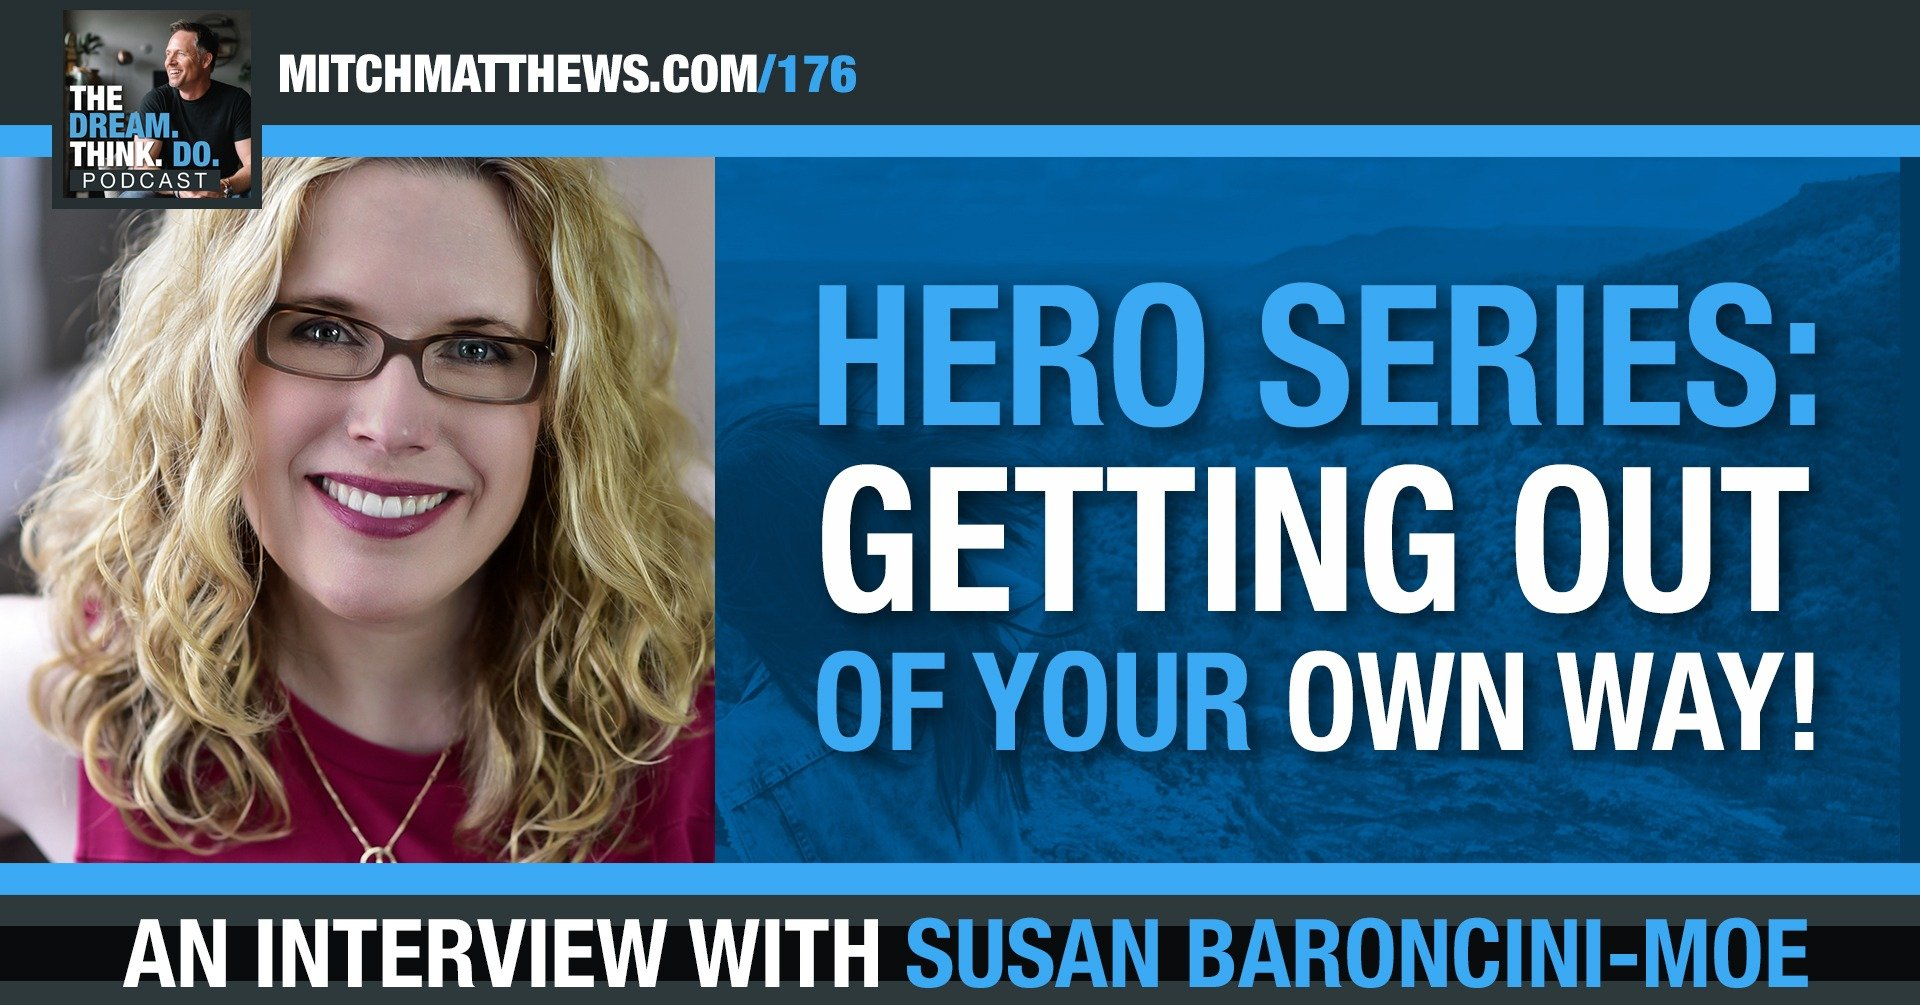 Get out of your own way, with Susan Baroncini-Moe